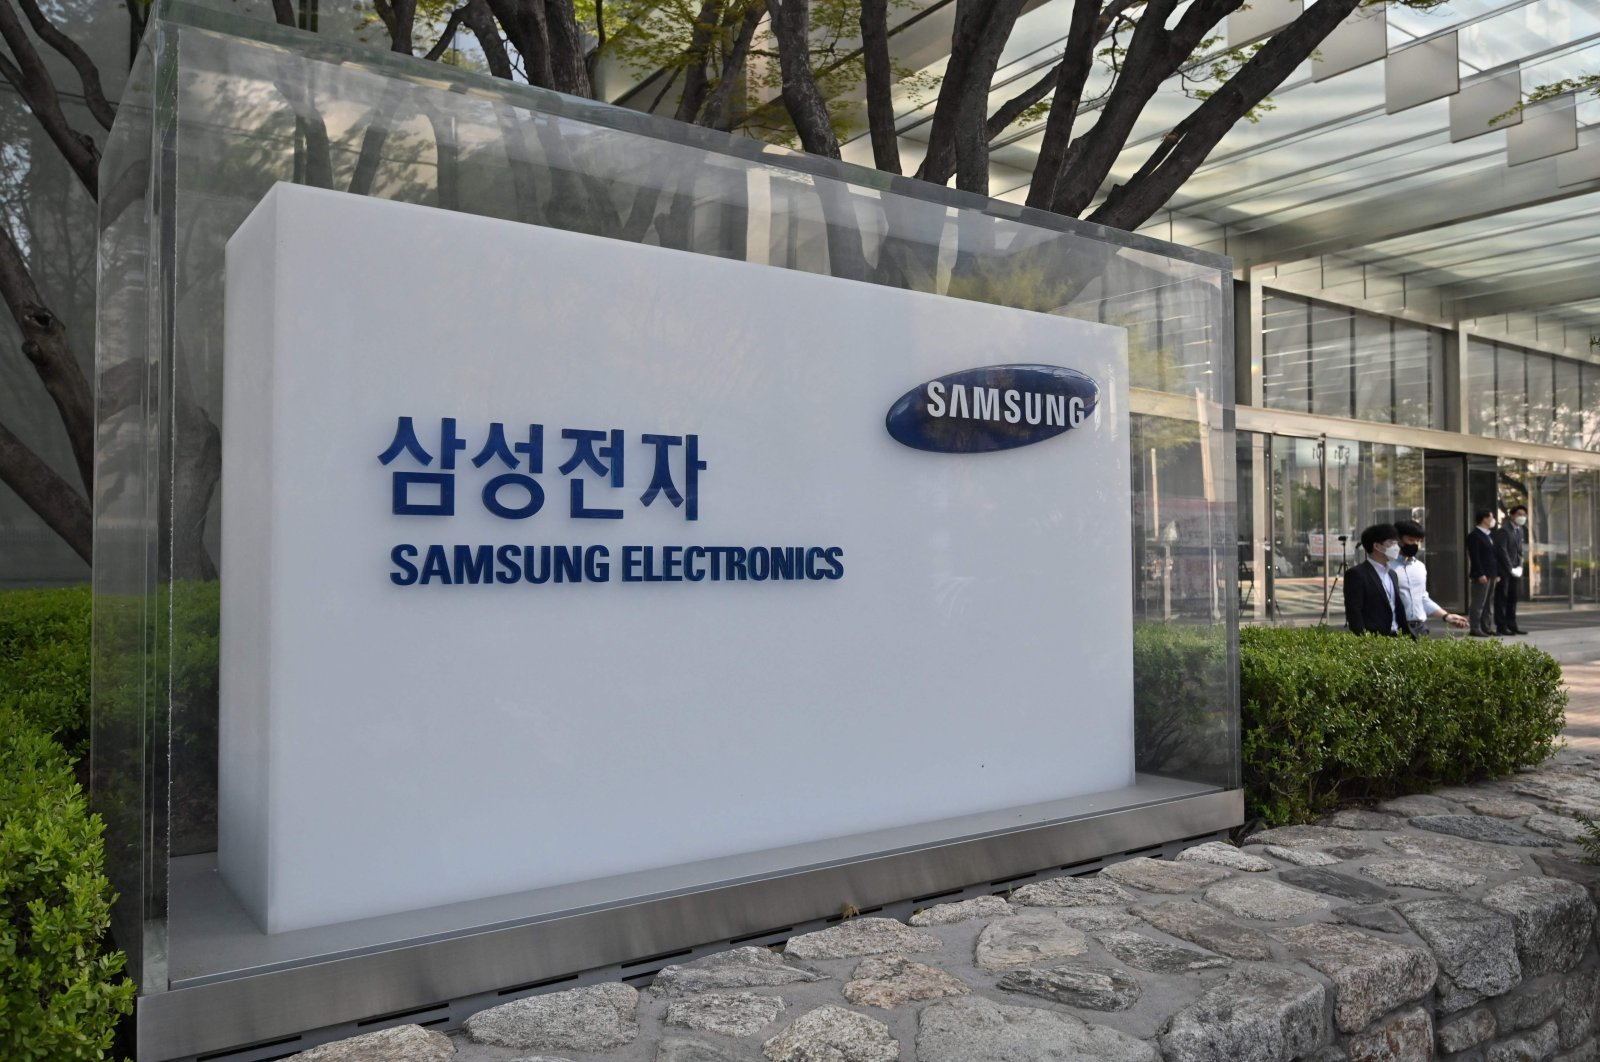 The logo of Samsung Electronics at the company's Seocho building in Seoul, South Korea, April 7, 2021. (AFP Photo)